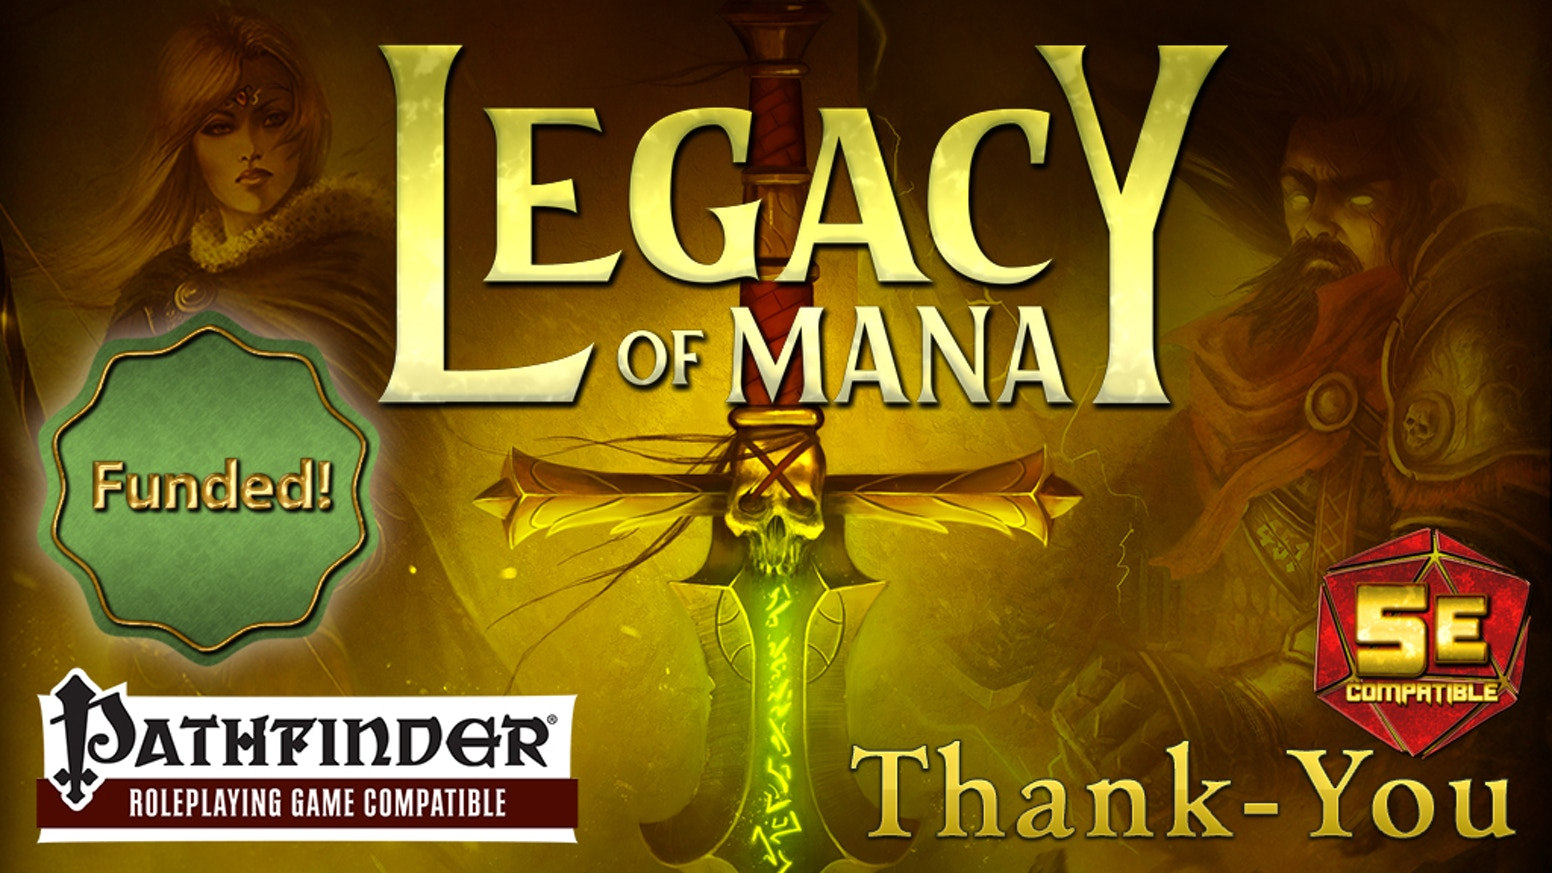 Legacy Of Mana Rpg Setting Guide For Pathfinder And 5e By Norse Foundry Kickstarter Norse foundry, fort myers, florida. legacy of mana rpg setting guide for